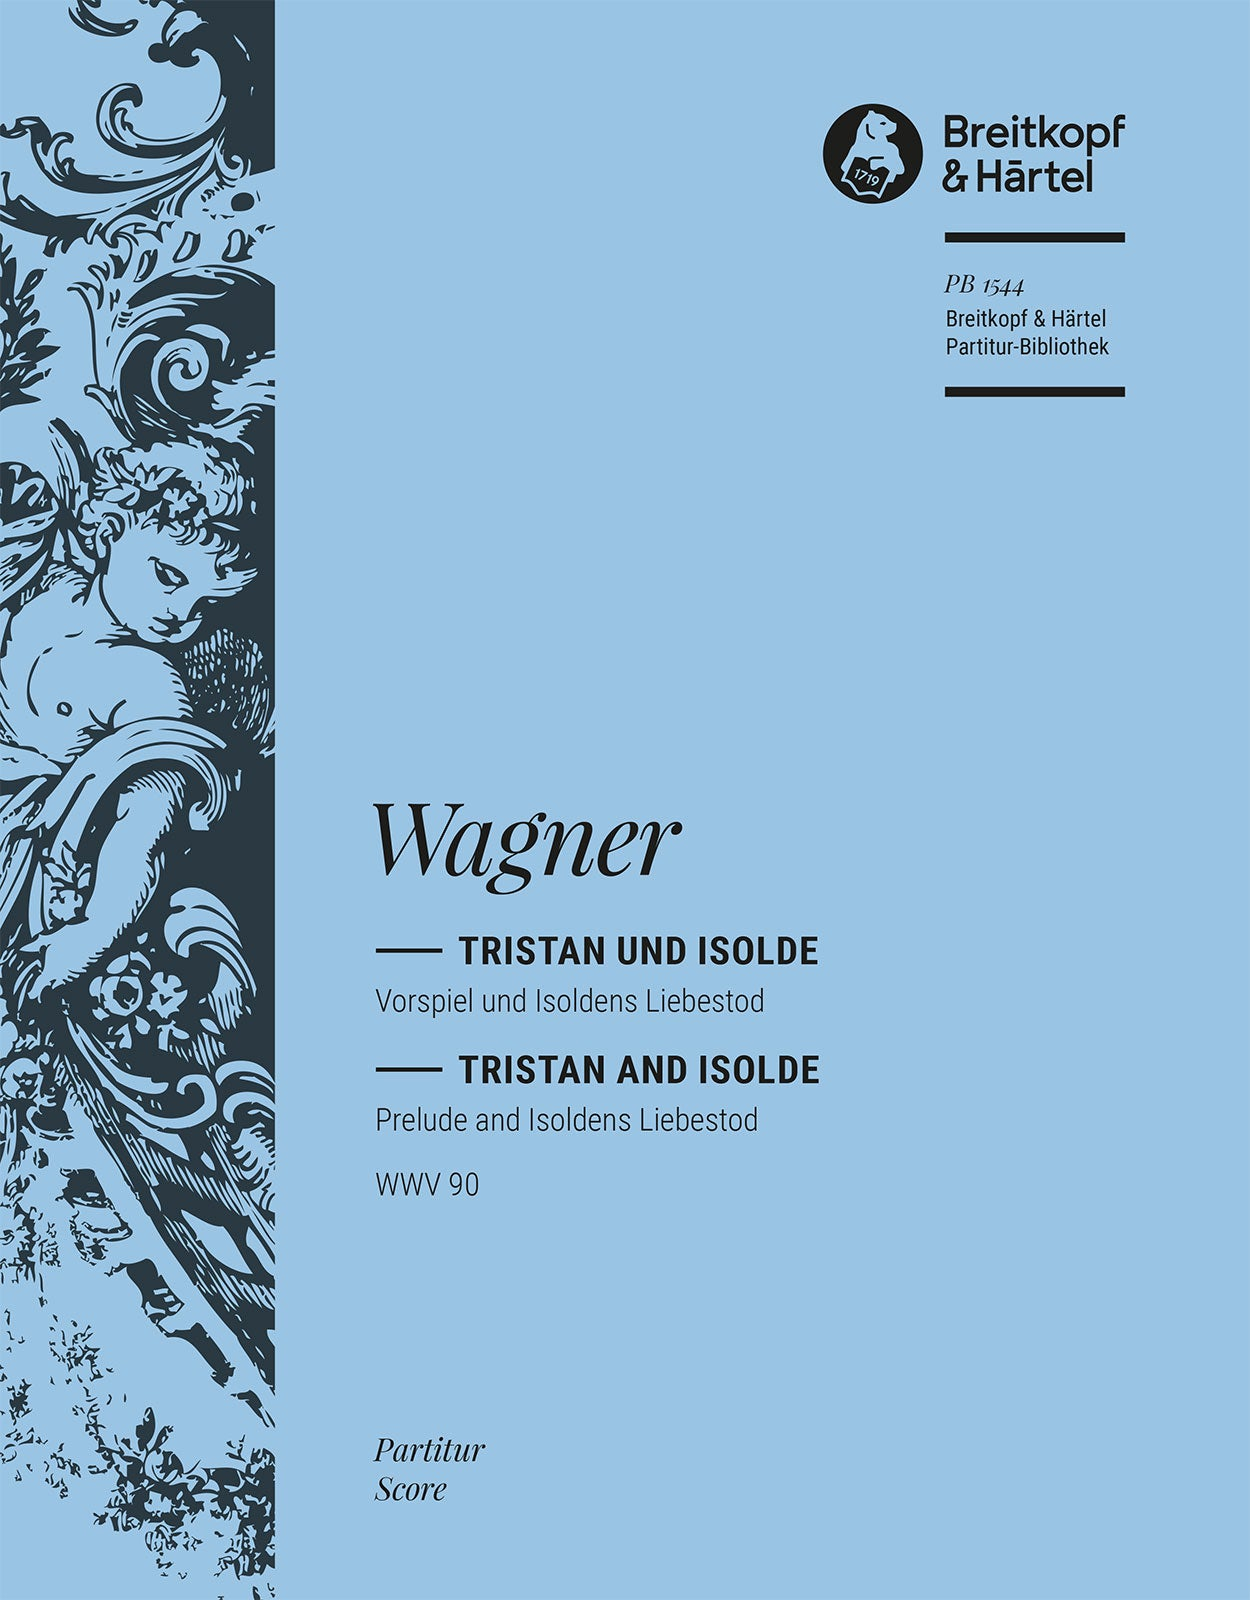 Wagner: Prelude and Isoldens Liebestod from Tristan and Isolde, WWV 90